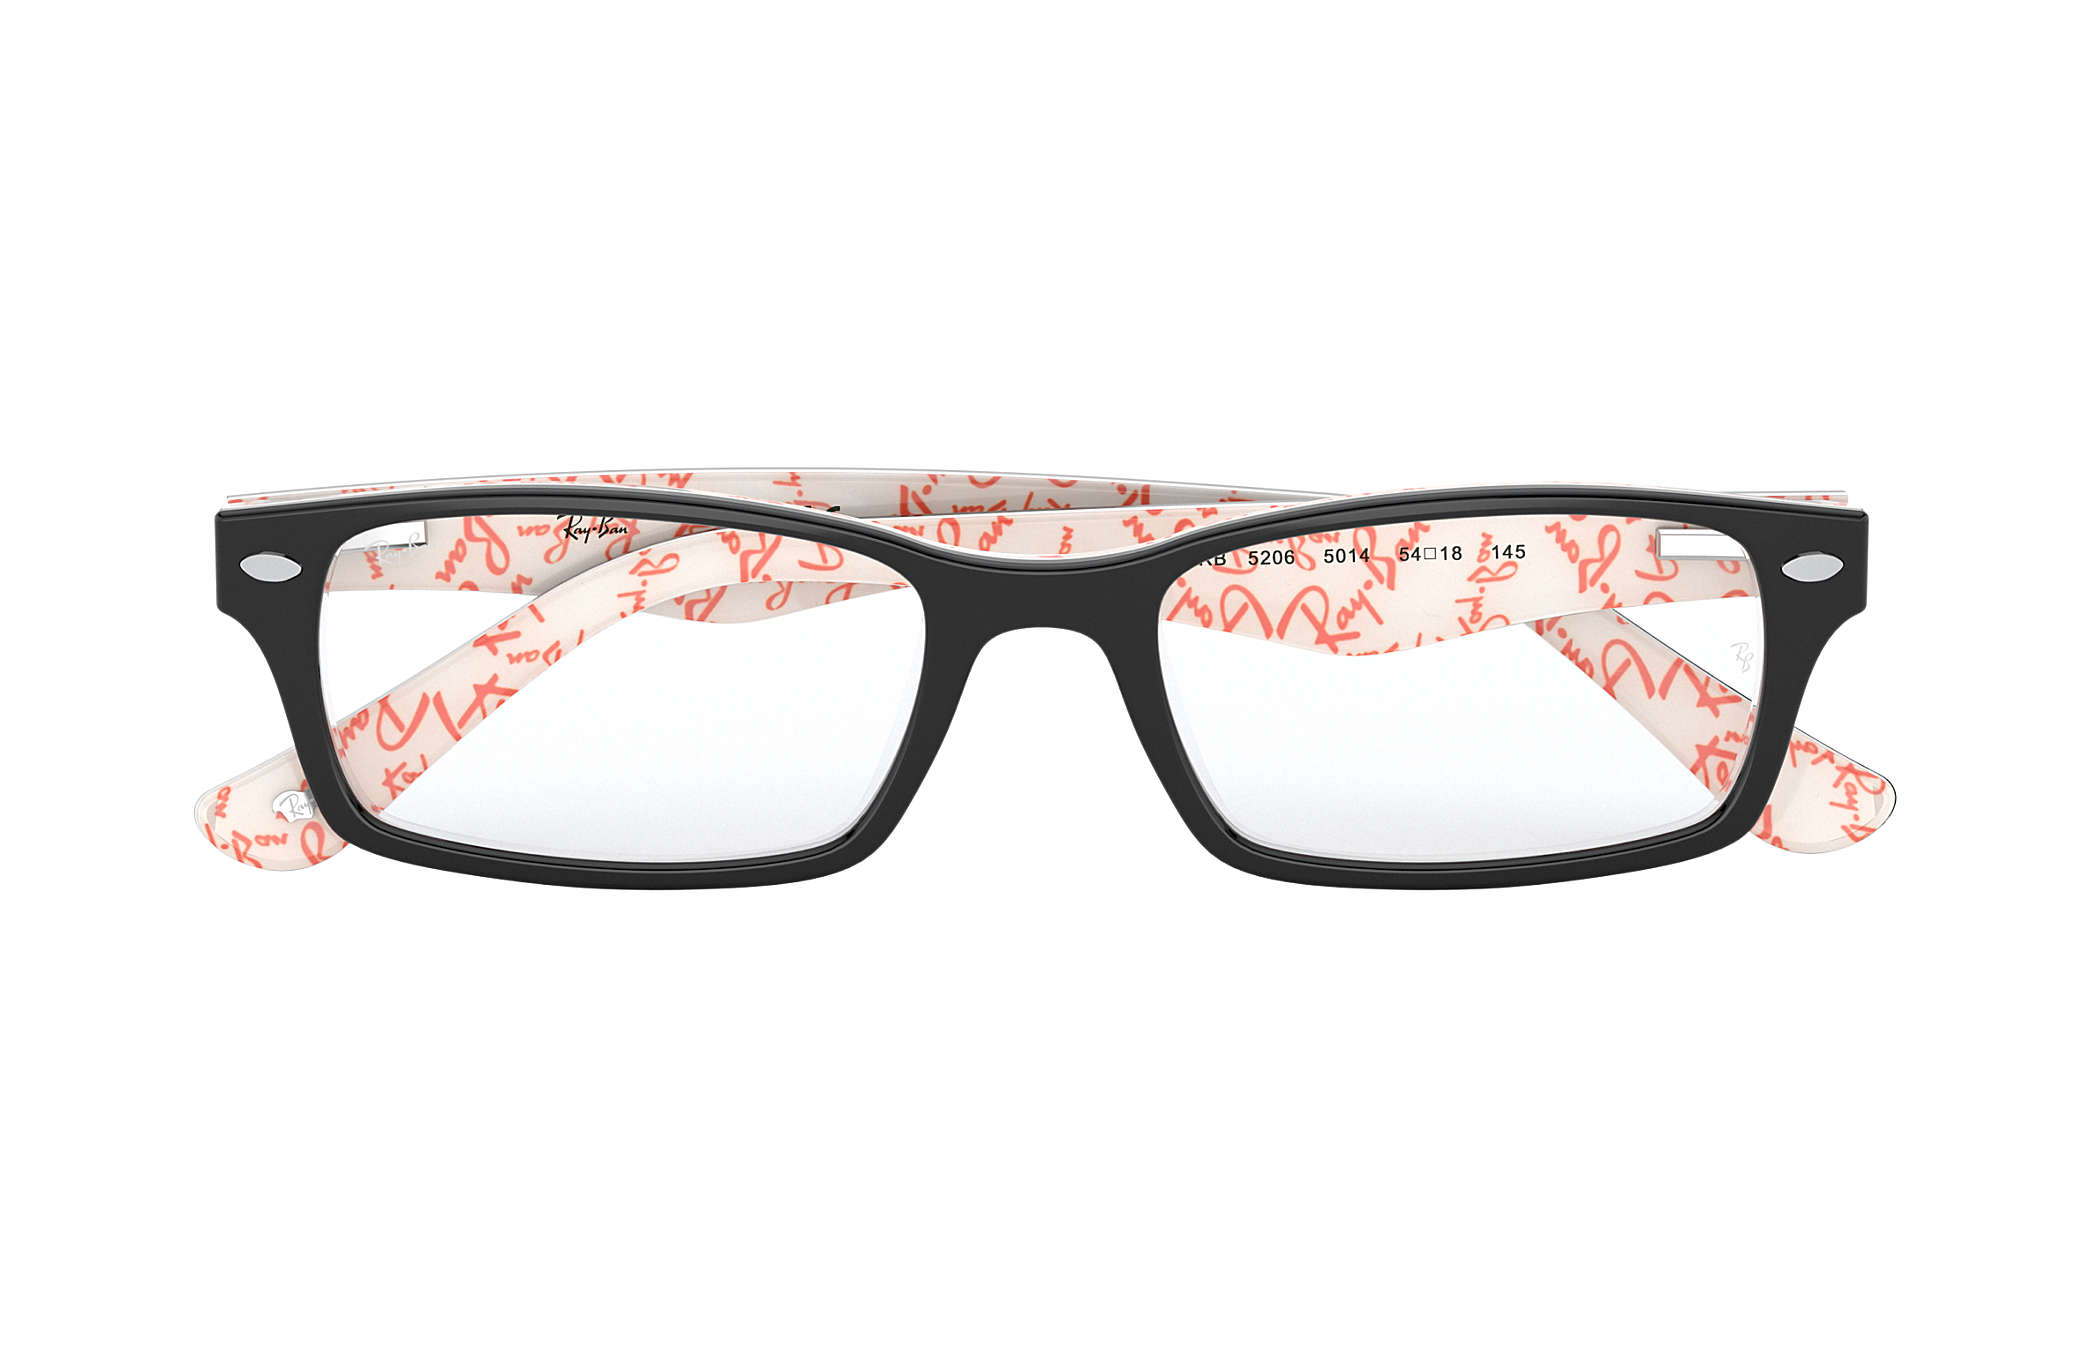 fc71425aa1fb3 Ray Ban Glasses Rb5206 « One More Soul